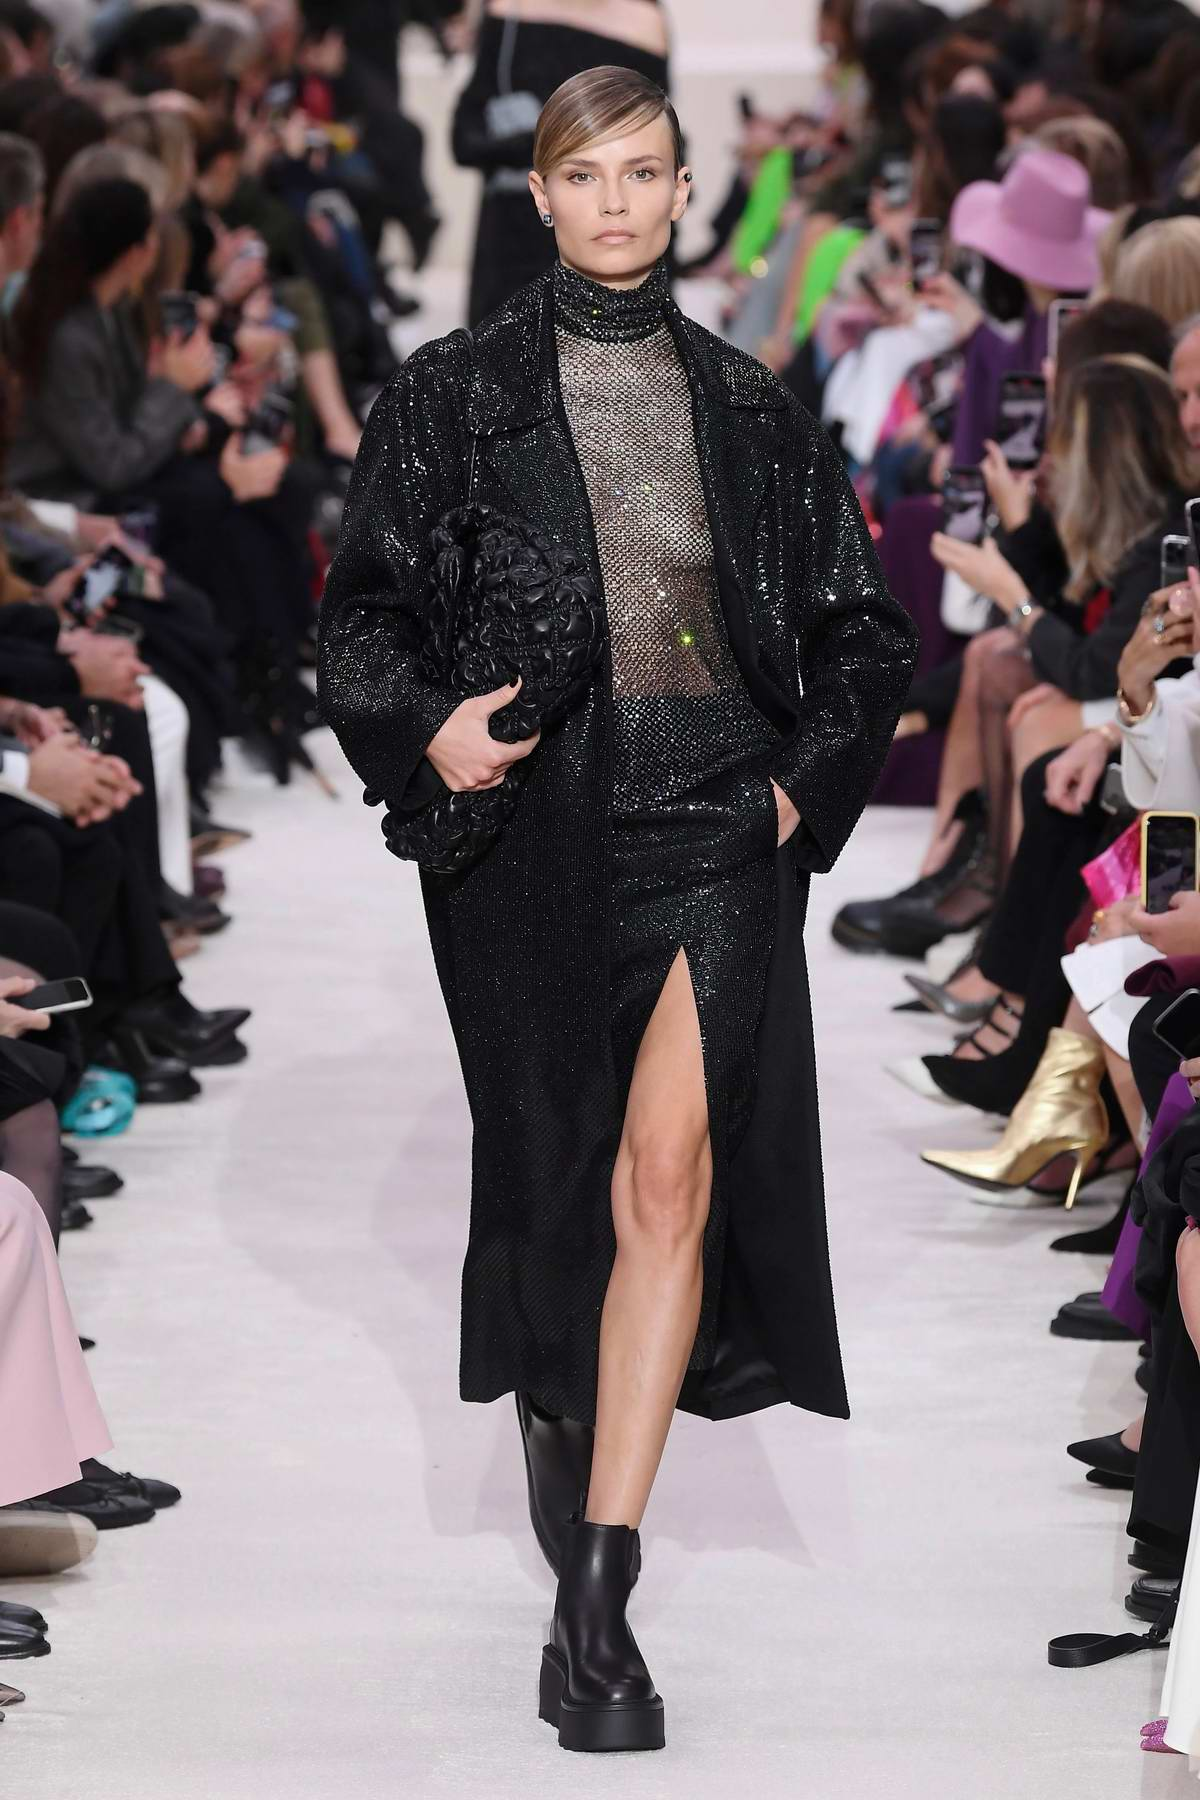 Natasha Poly walks the runway at Valentino show, F/W 2020 during Paris Fashion Week in Paris, France